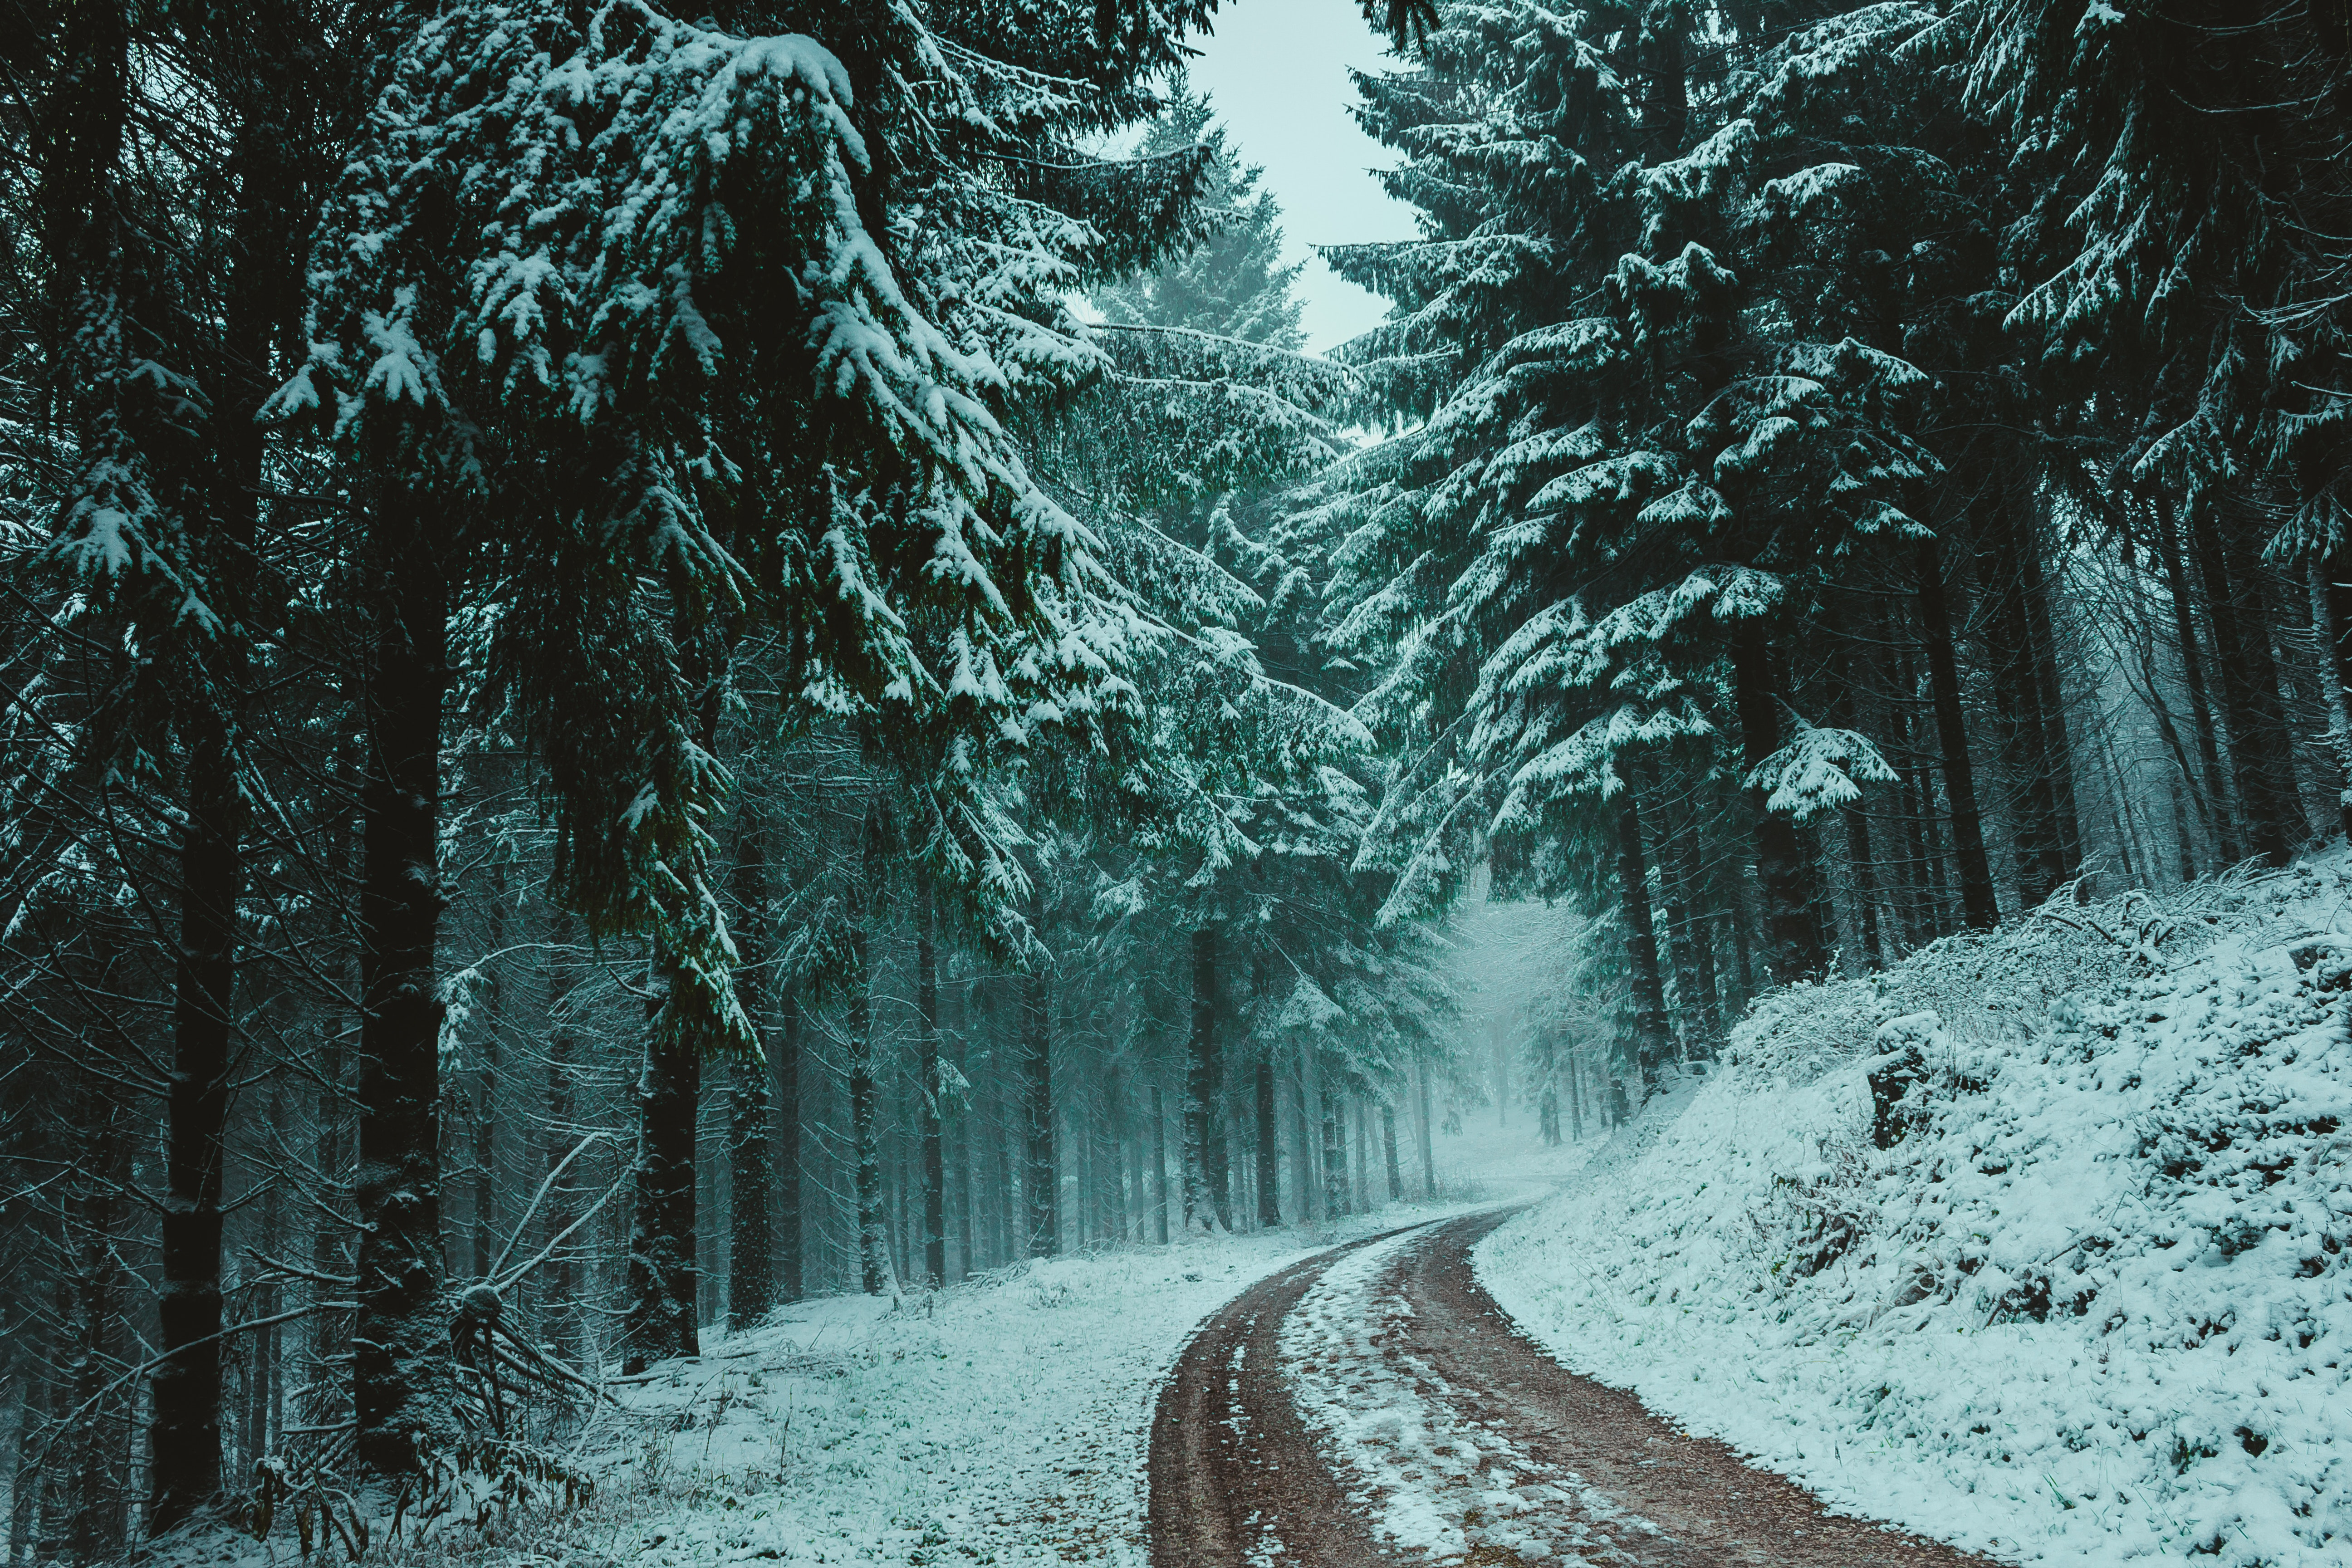 Trees Covered With Snow, Pine trees, Road, Scenery, Outdoors, HQ Photo